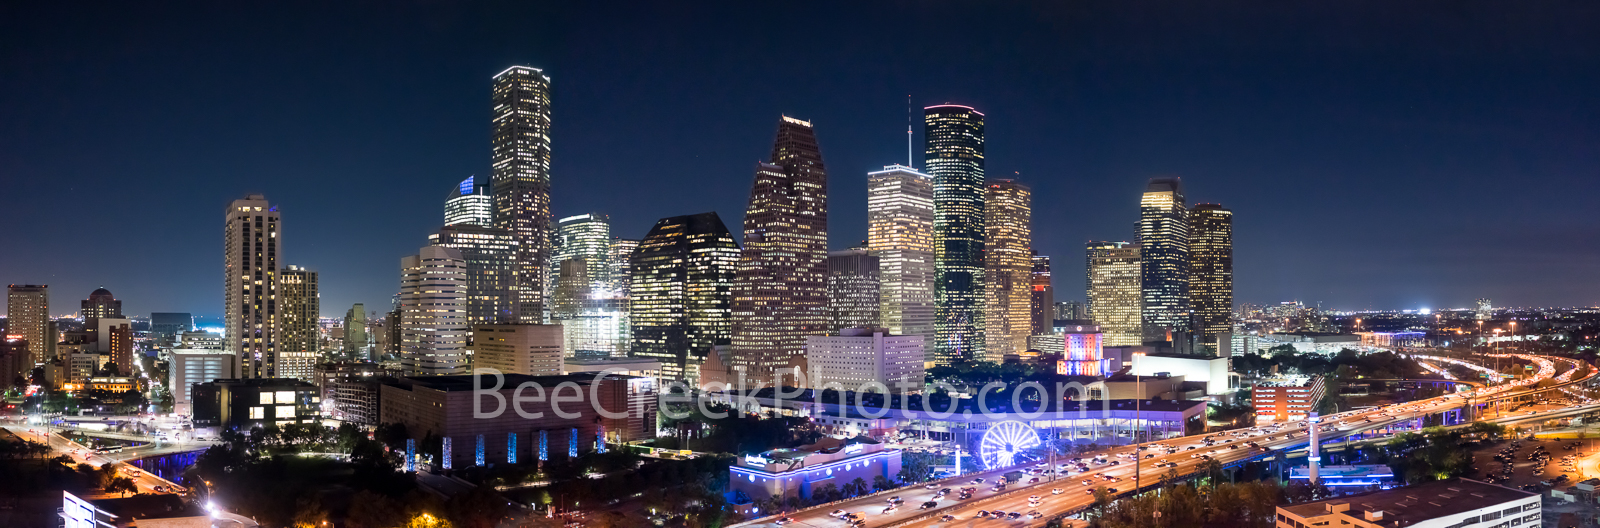 Aerial Houston Skyline Night Pano - Aerial Houston Skyline pano night along IH45 in downtown area of the city. This image show...